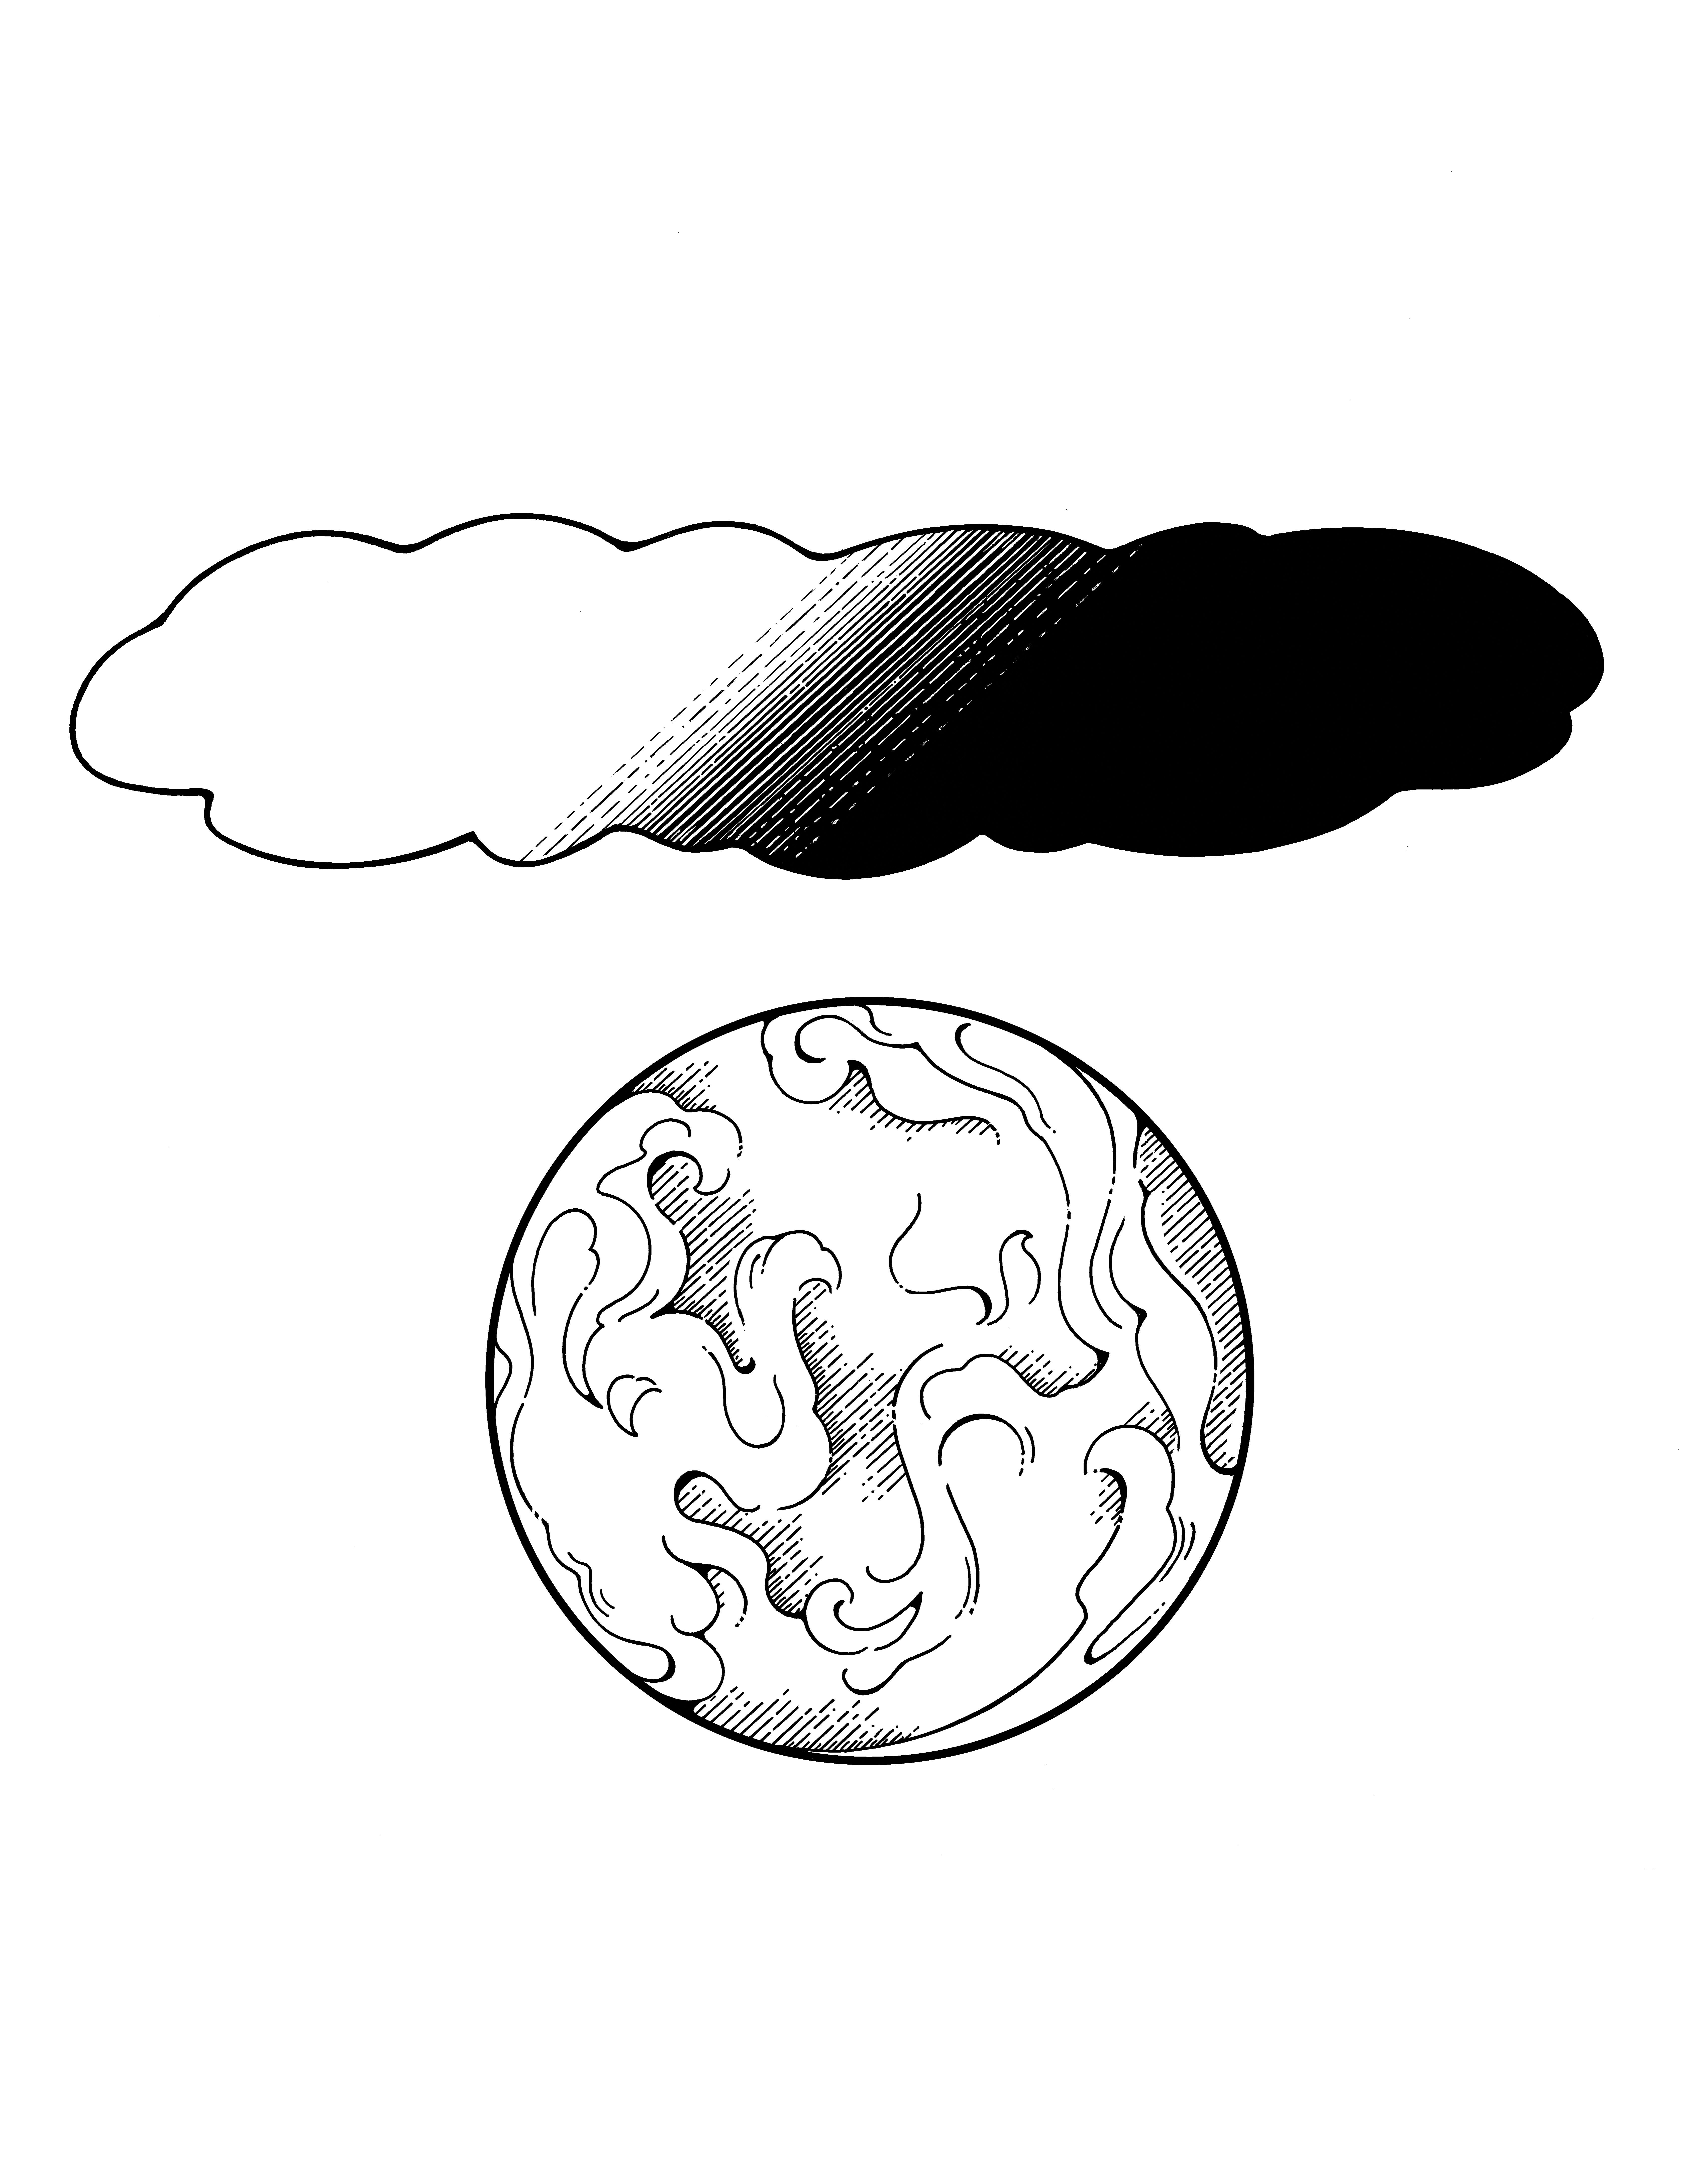 An illustration of the earth with a cloud of light and darkness above it.